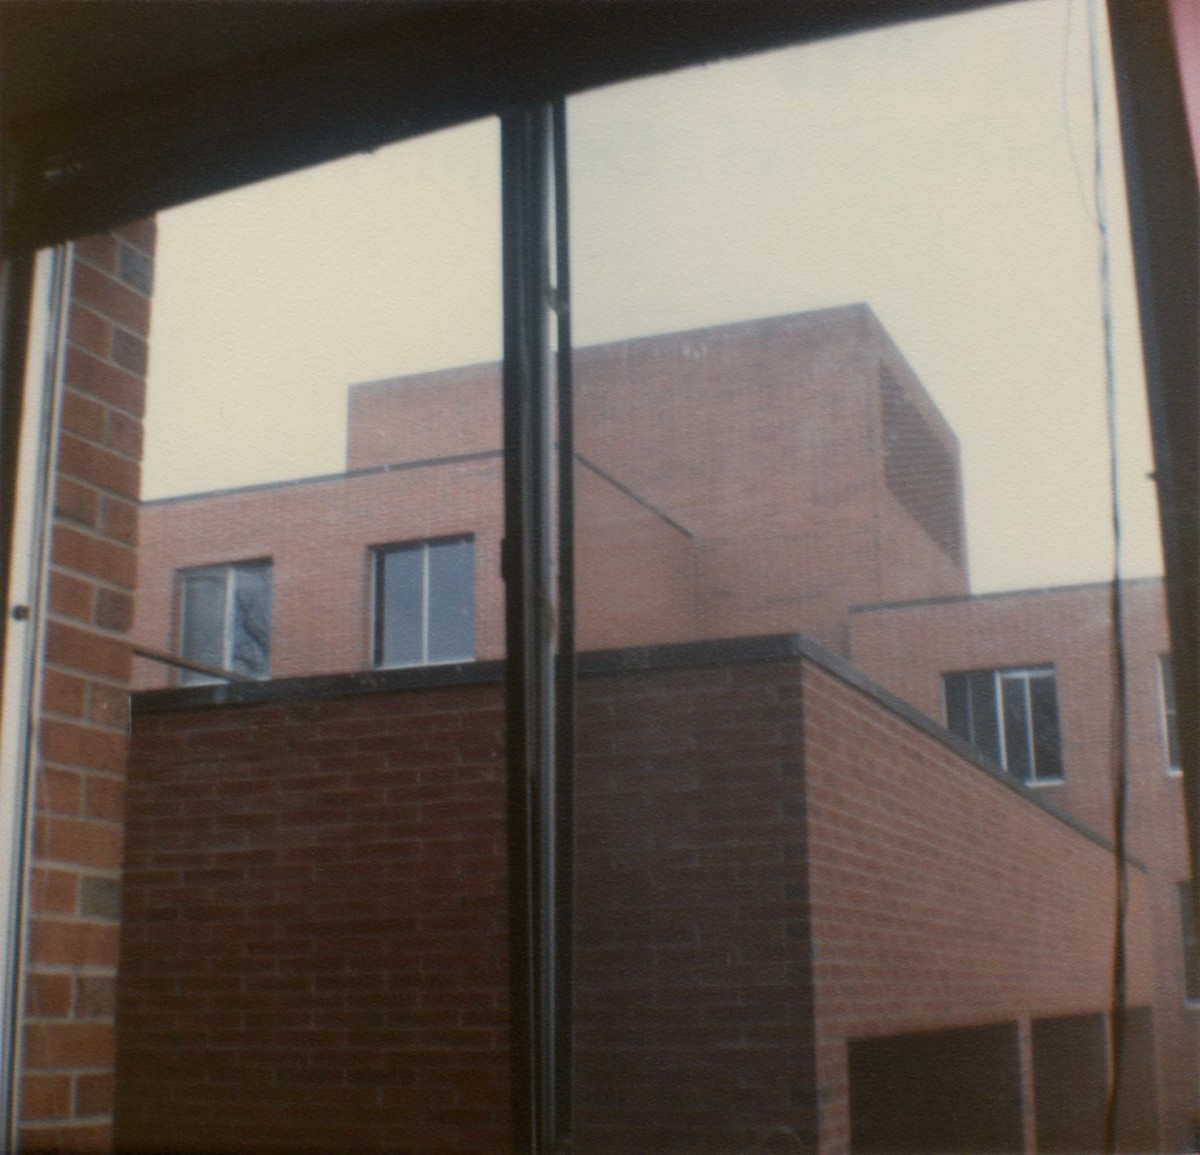 The view outside my dorm window for three years: the brutalistically-modern Danforth dormitory is unlovely but offers nice amenities such a single occupancy rooms and air-conditioning. It is structurally identical to girls' dormitory Kettering Hall.